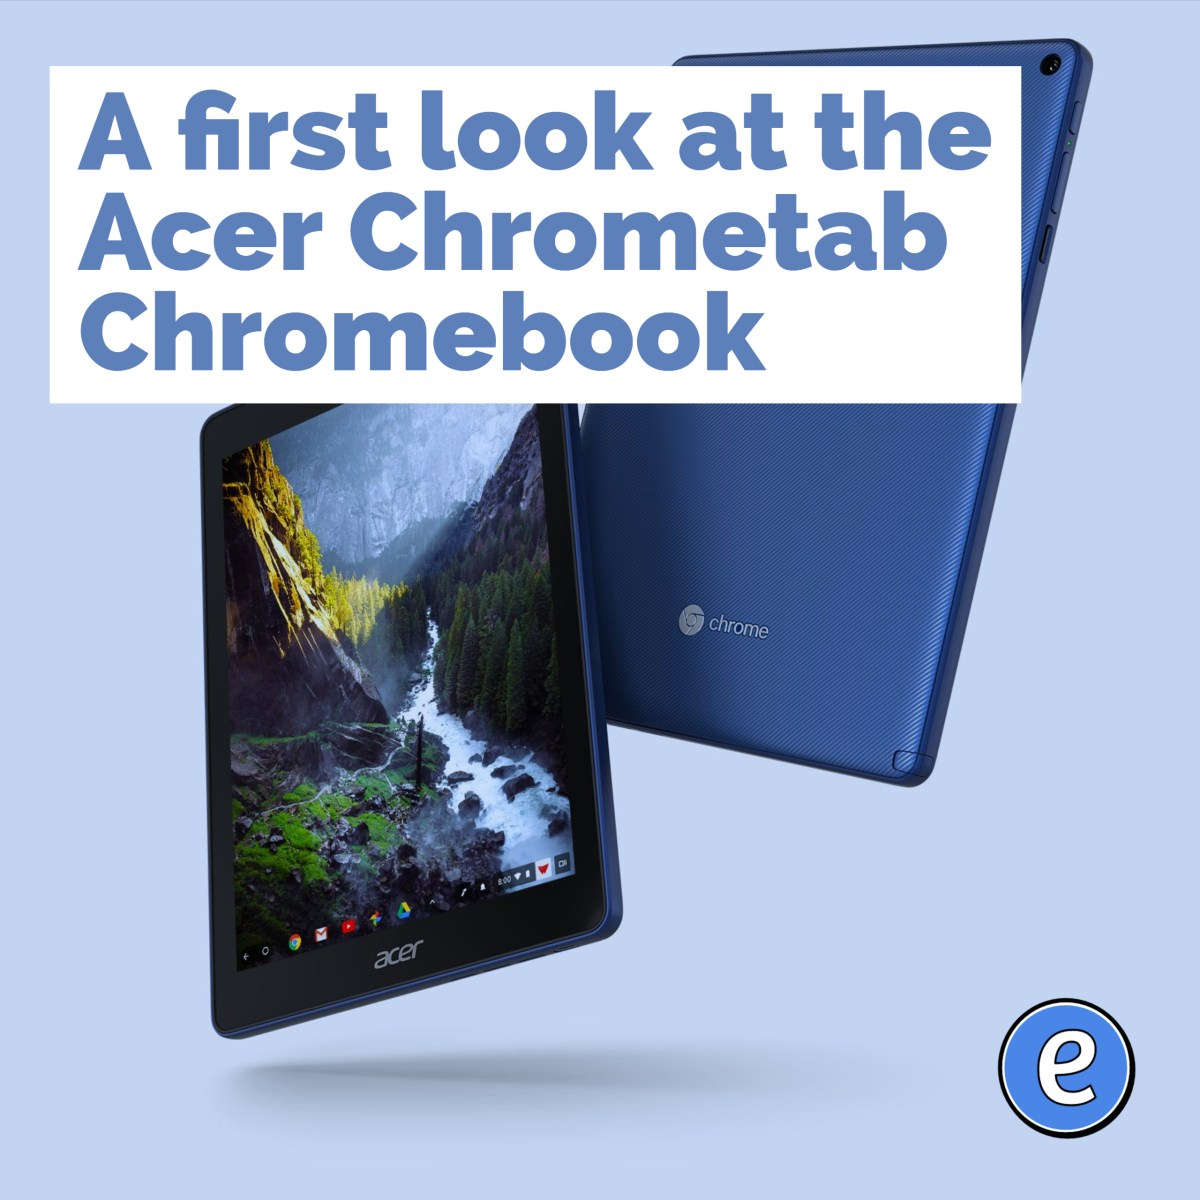 A first look at the Acer Chrometab Chromebook